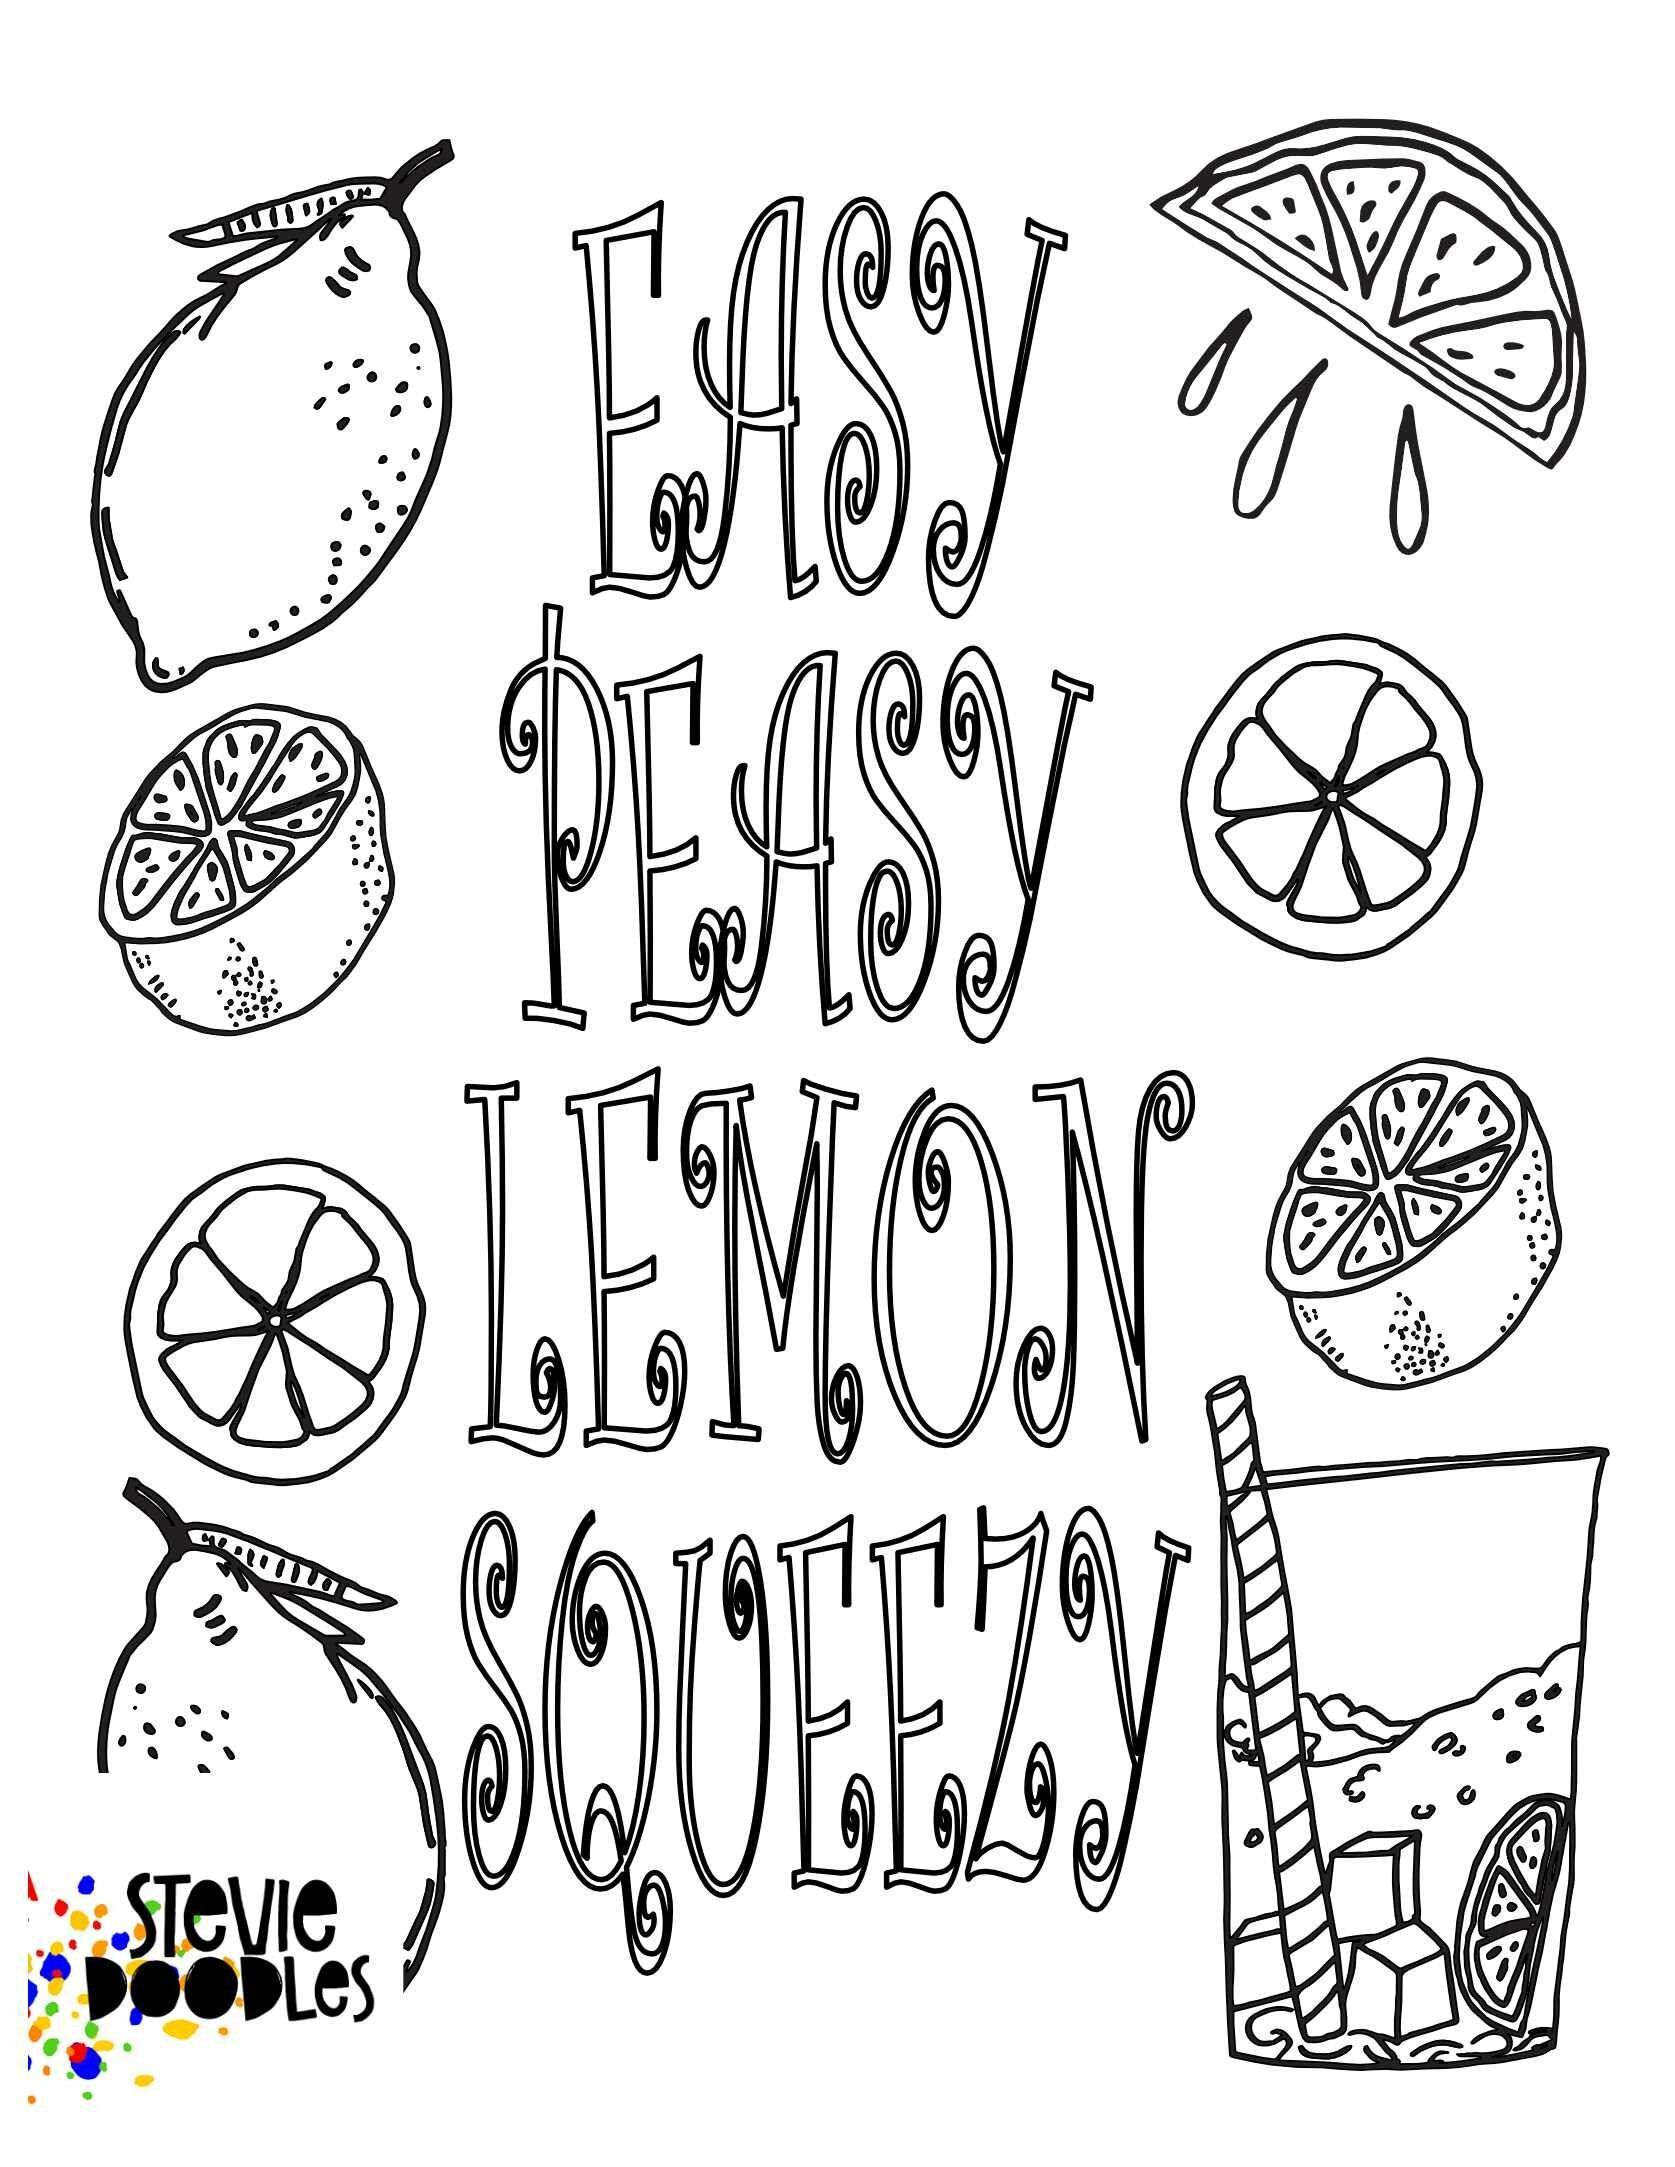 Easy Peasy Lemon Squeezy Free Printable Lemon Coloring Page Stevie Doodles Free Printable Coloring Pages Quote Coloring Pages Printable Coloring Pages